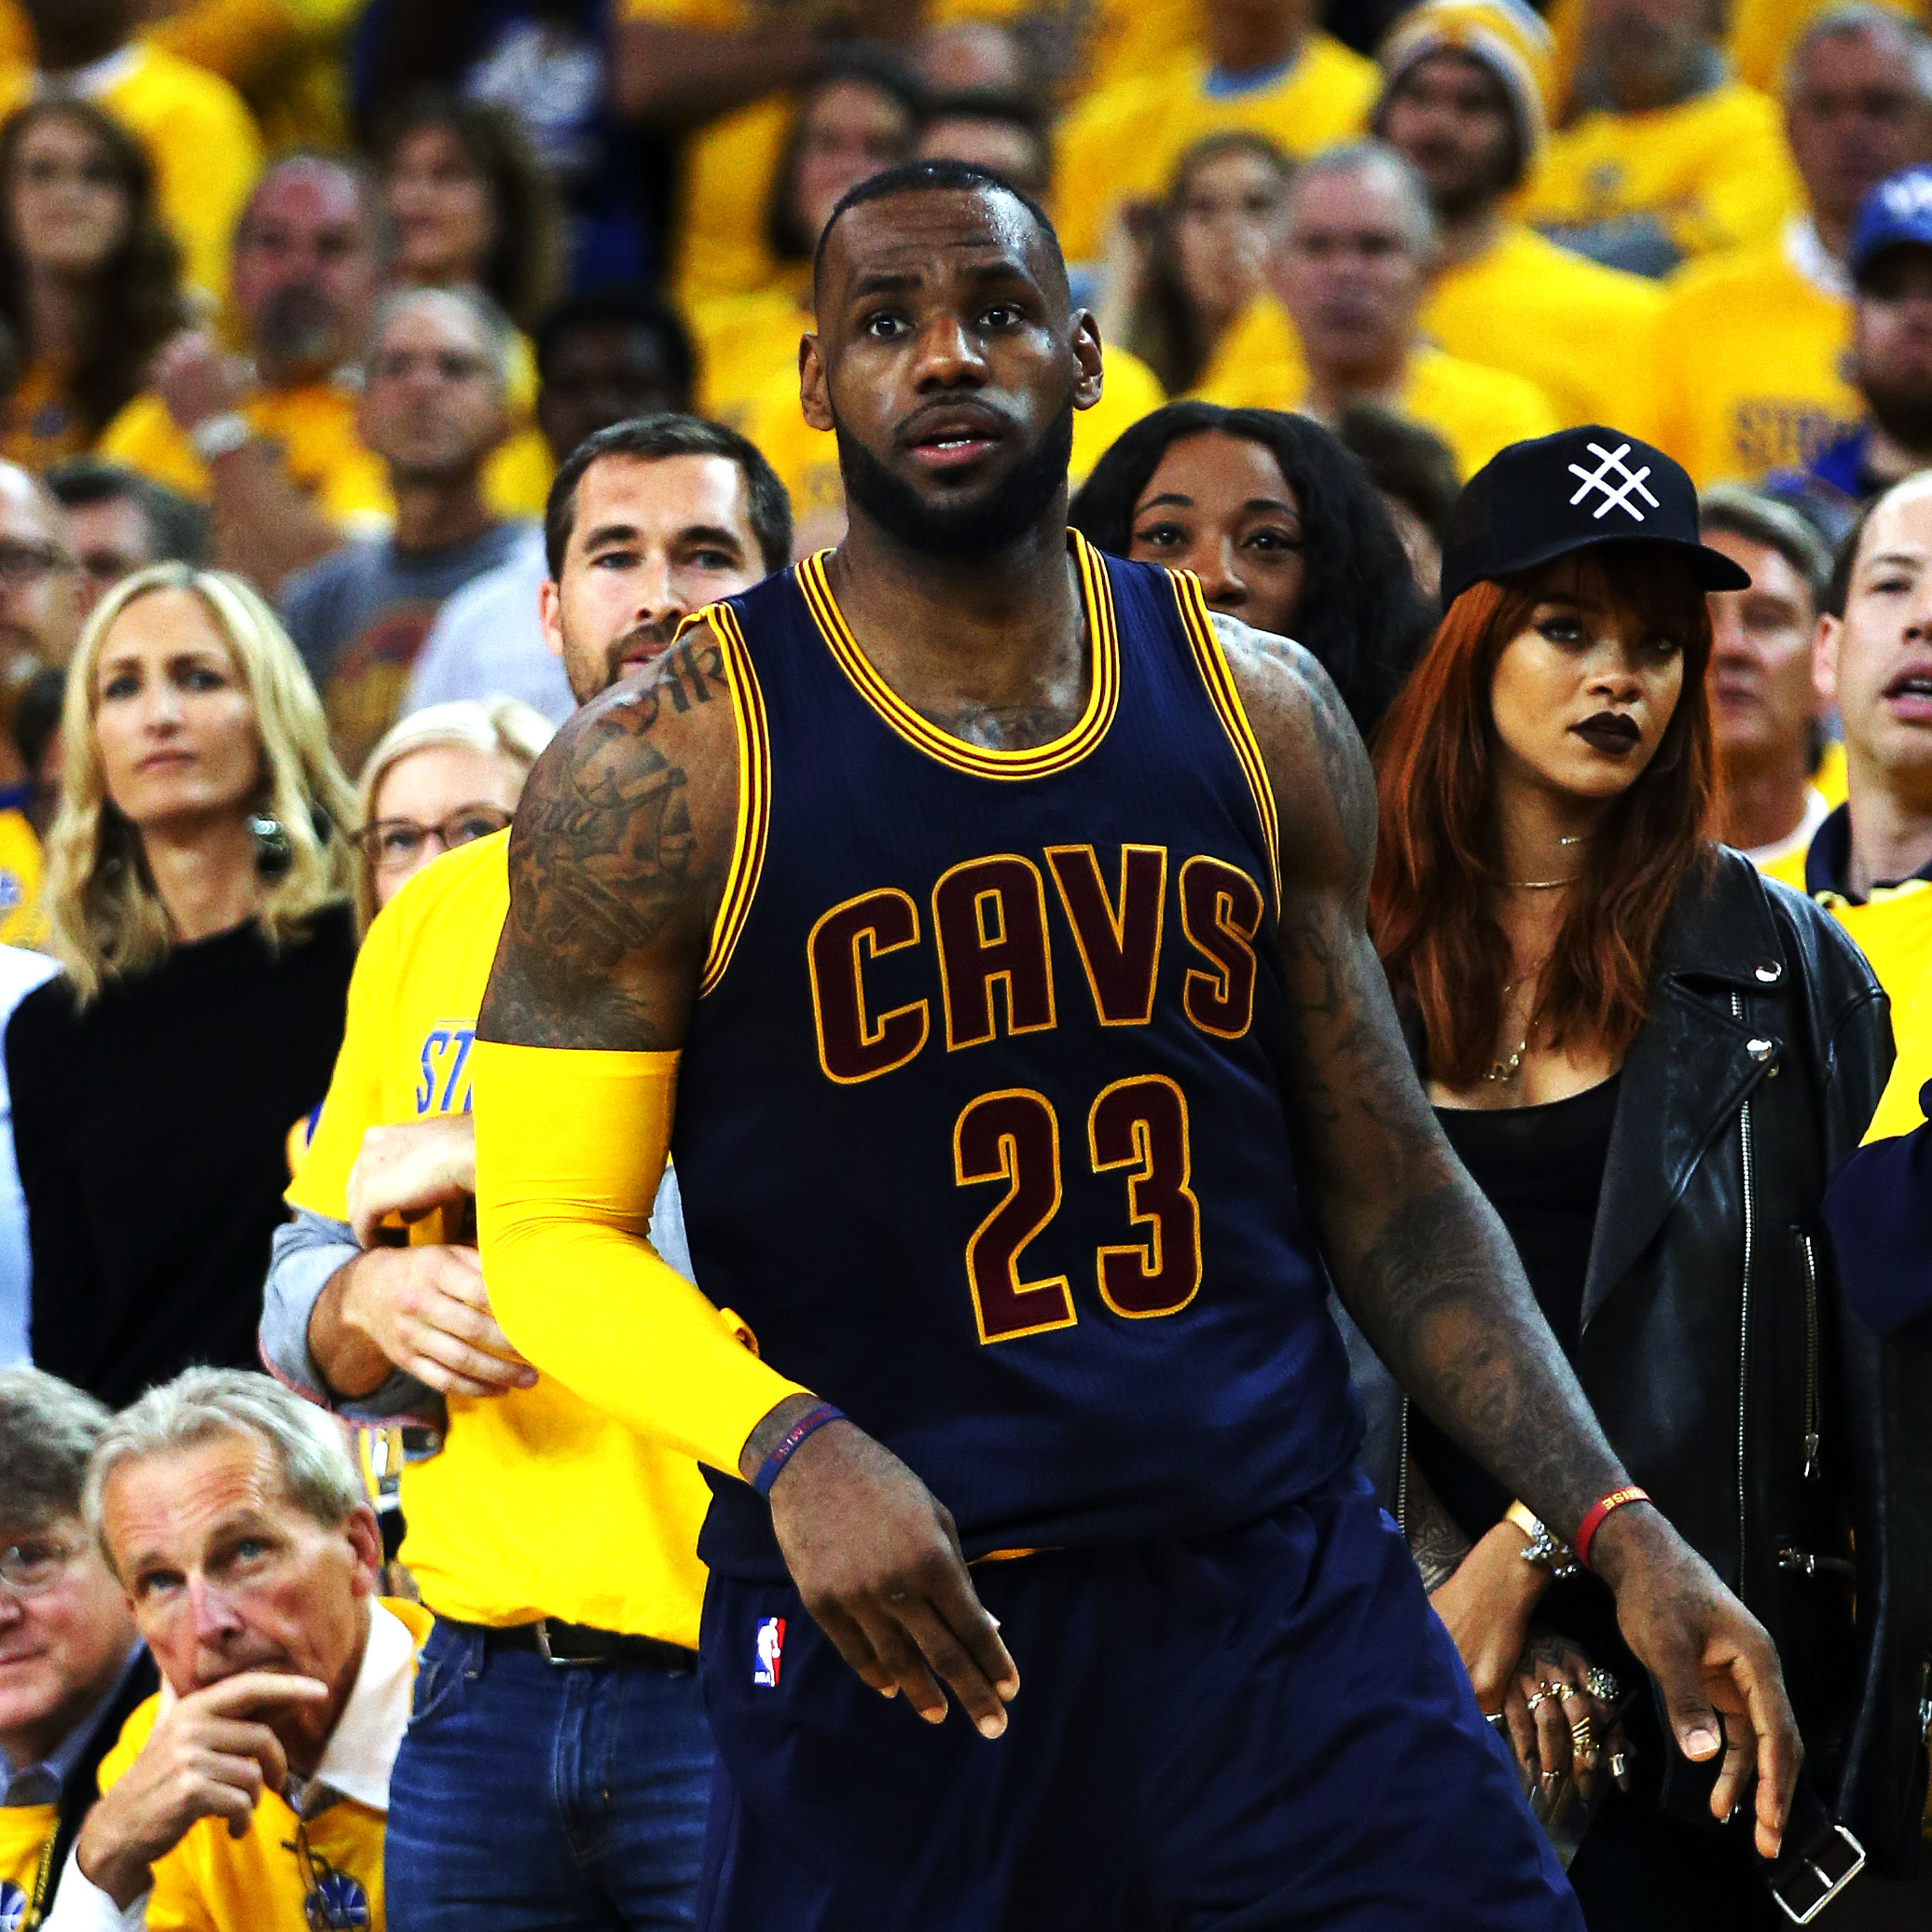 cae590c3d Rihanna watches as LeBron James  23 of the Cleveland Cavaliers plays  against the Golden State Warriors during Game One of the 2015 NBA Finals at  ORACLE ...